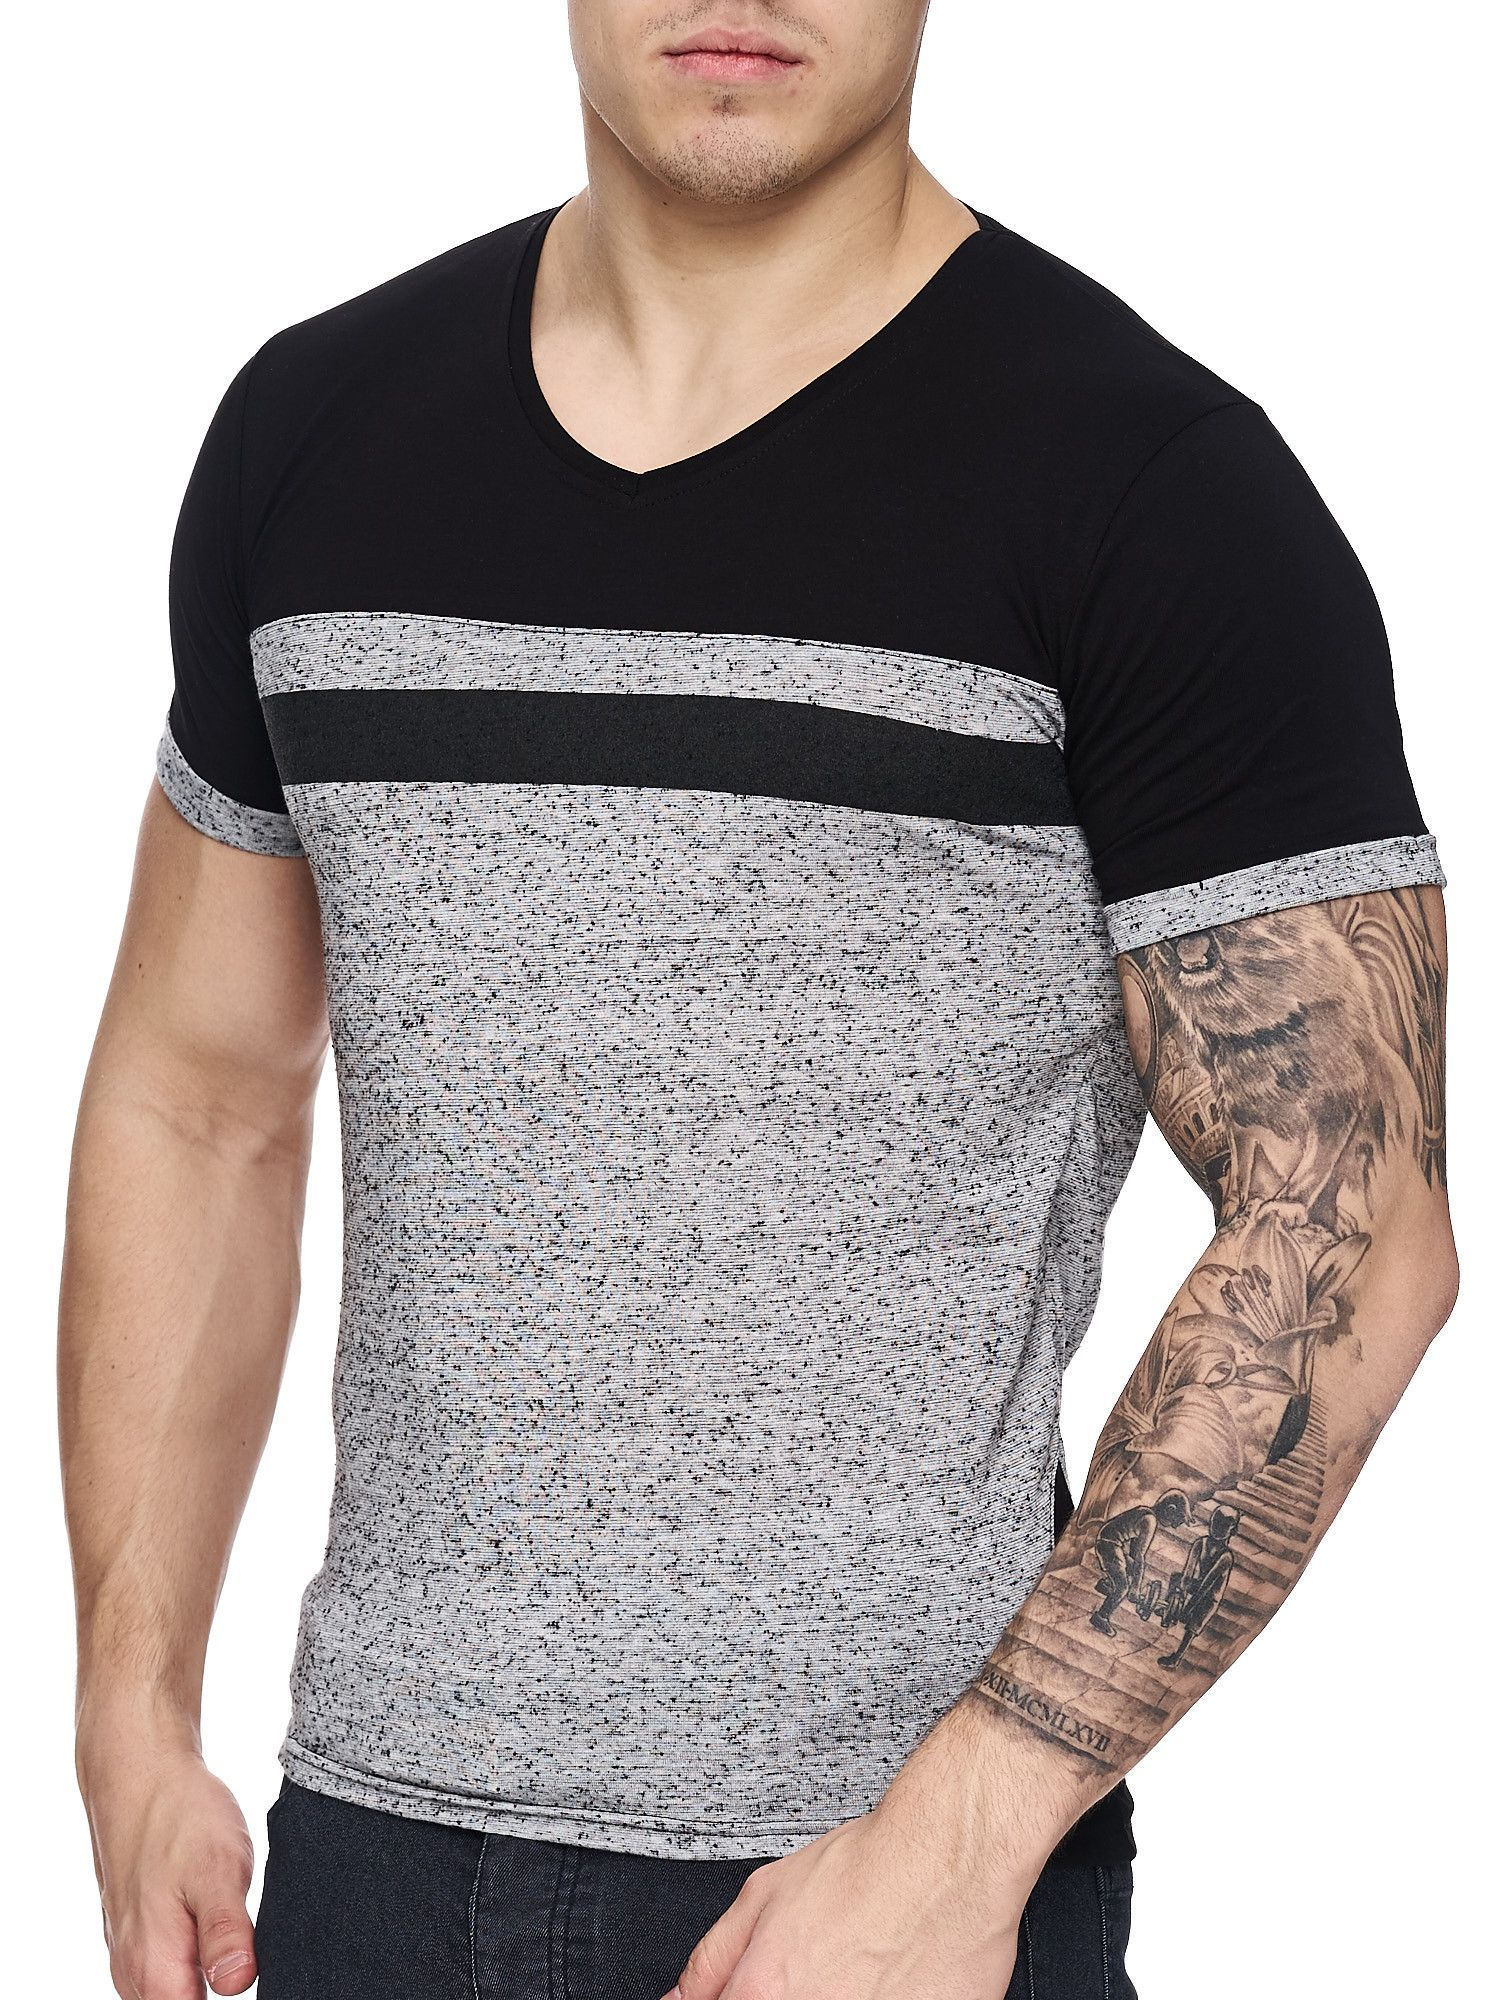 b95344daad679 K D Men Cross Band V-Neck T-shirt - Gray